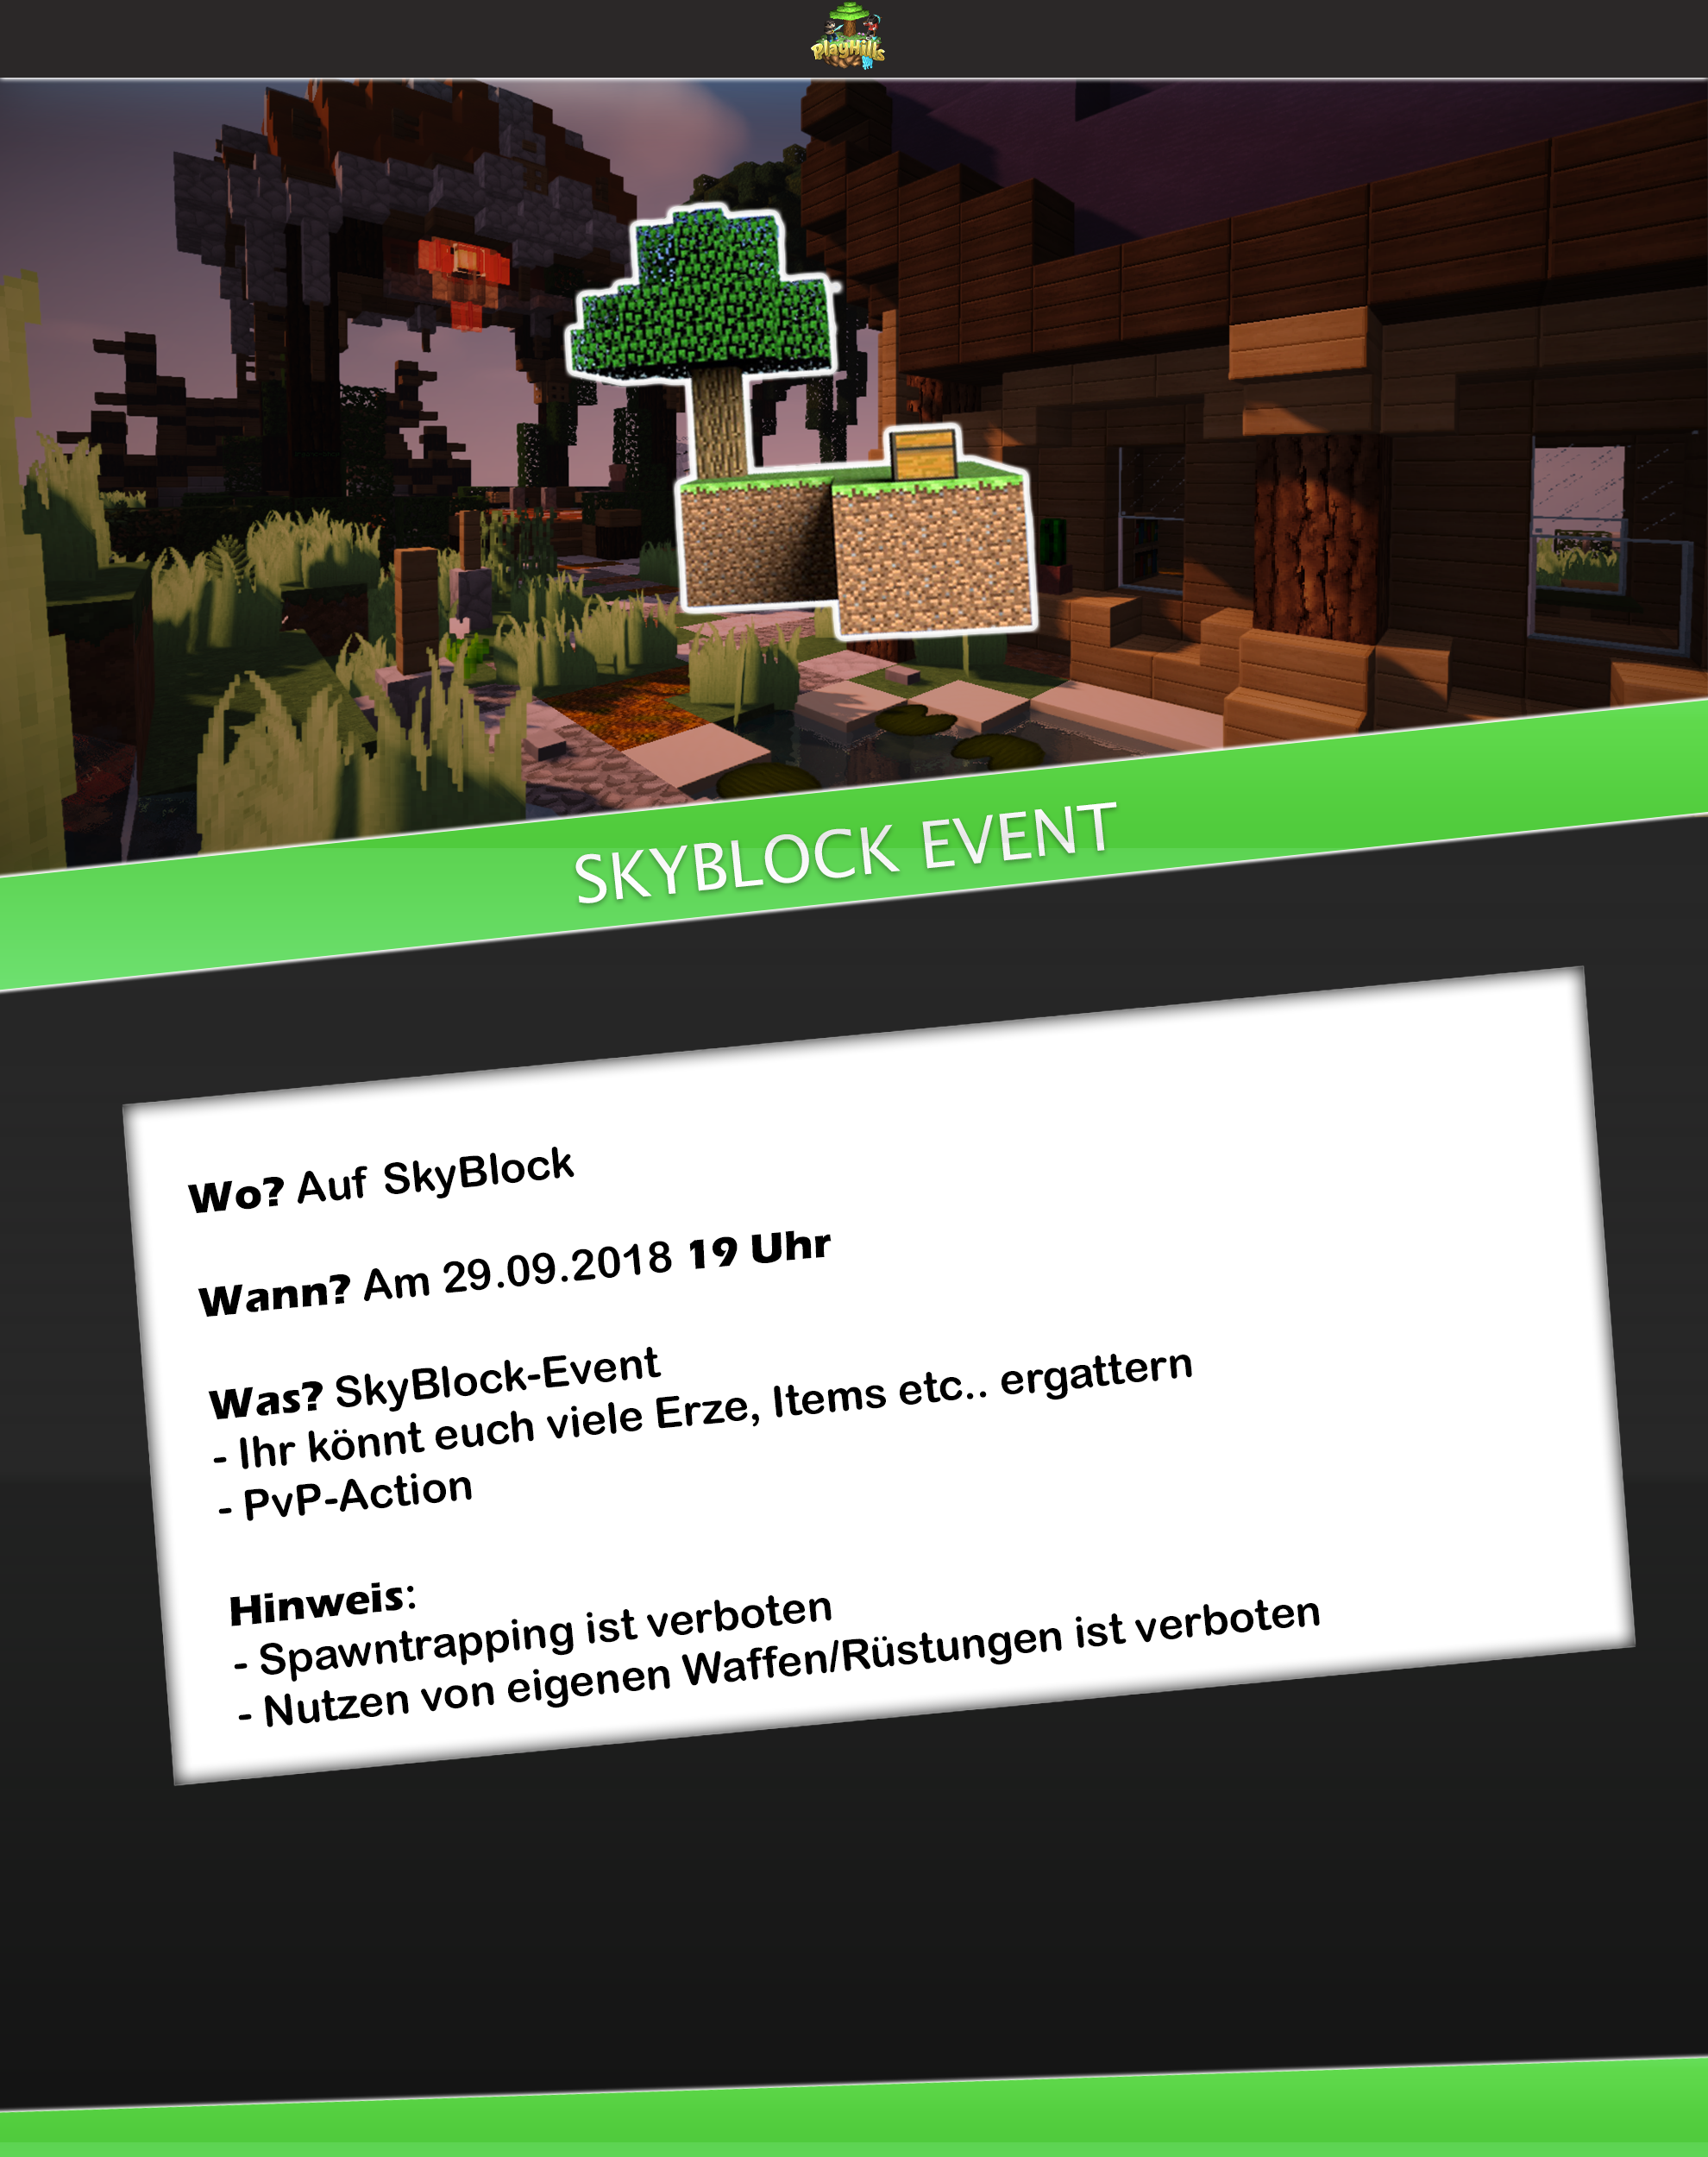 skyblock-event.png